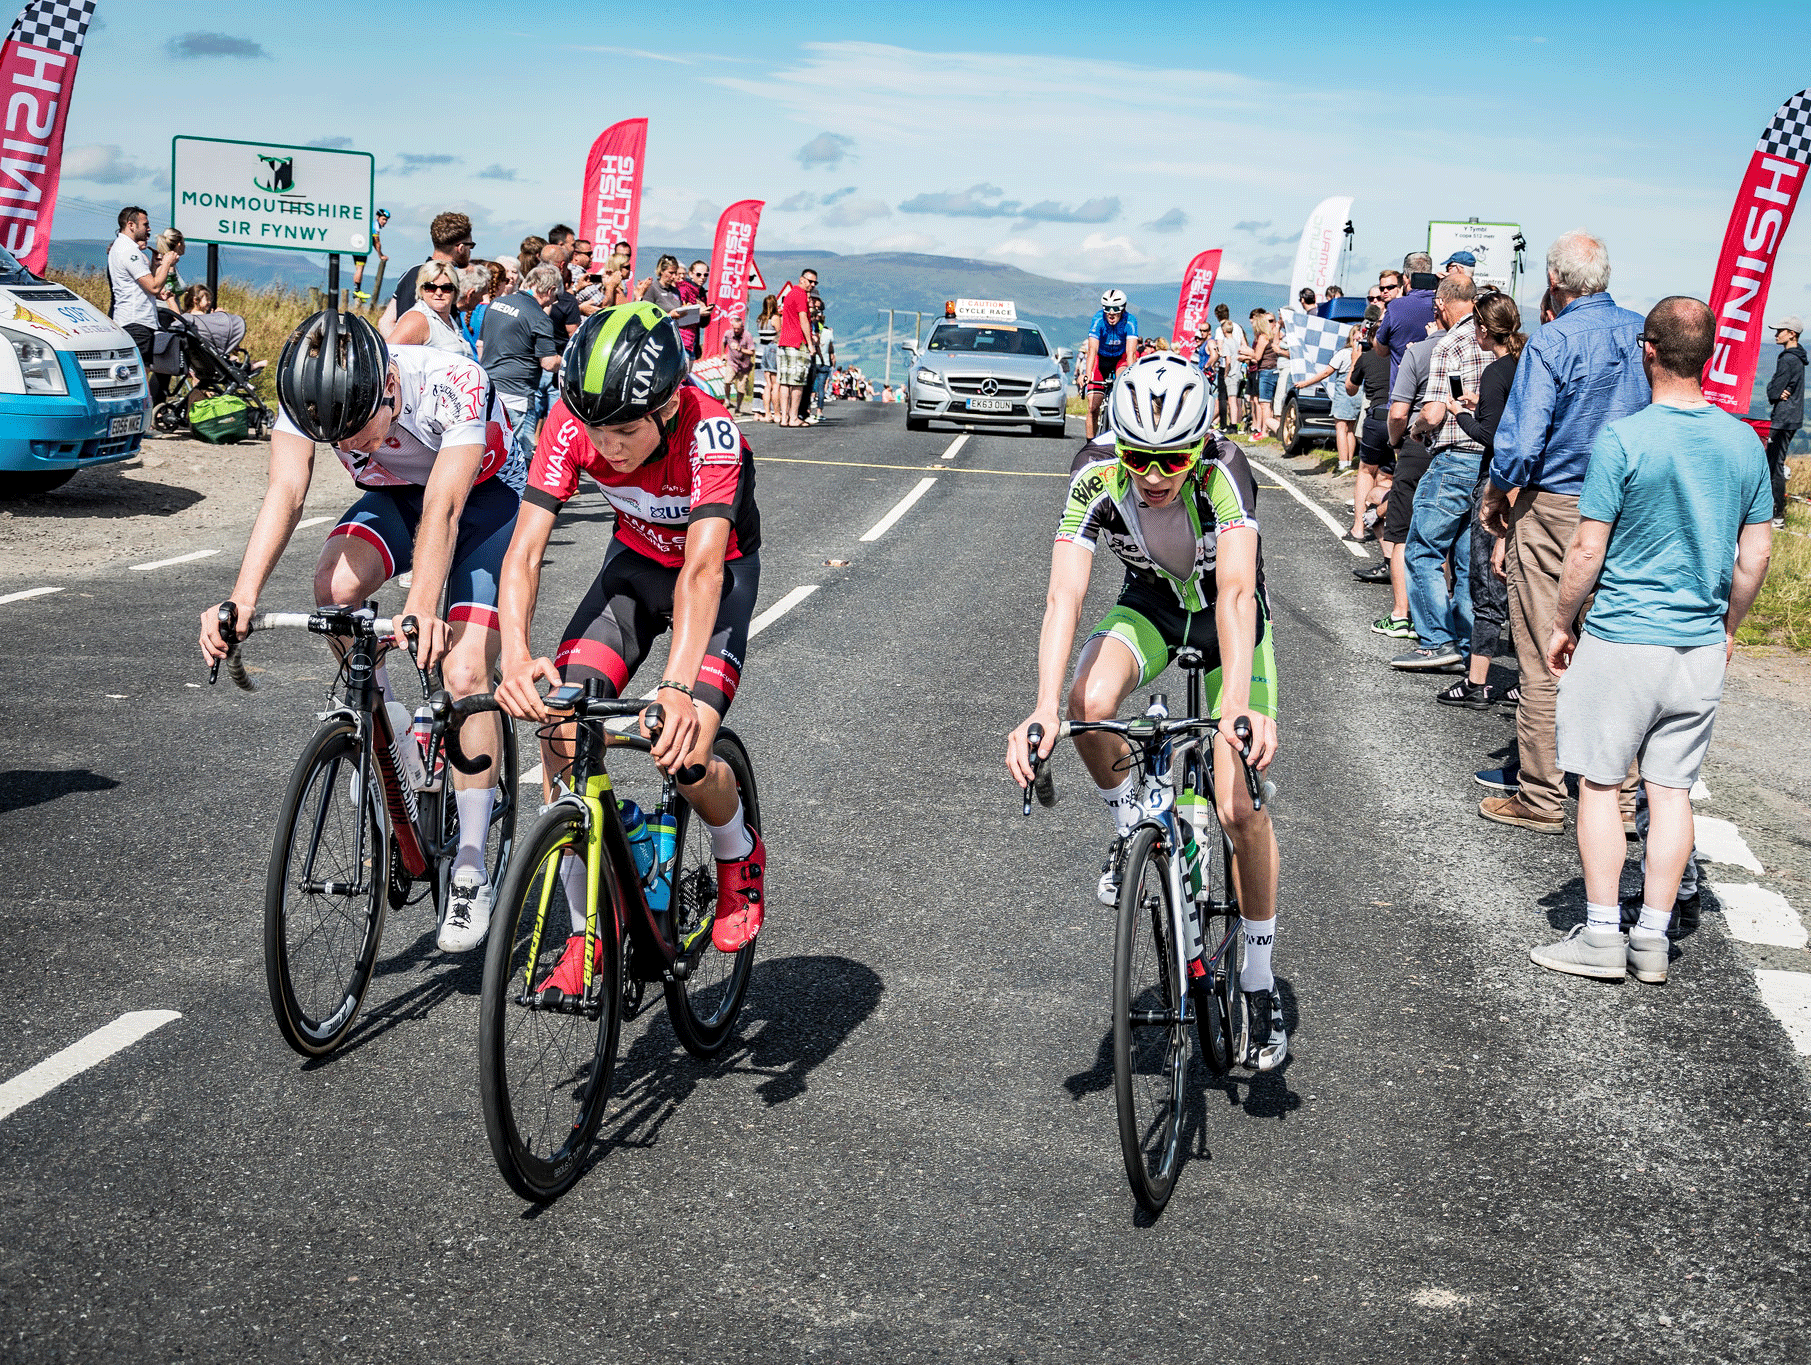 Tour of Wales 2017